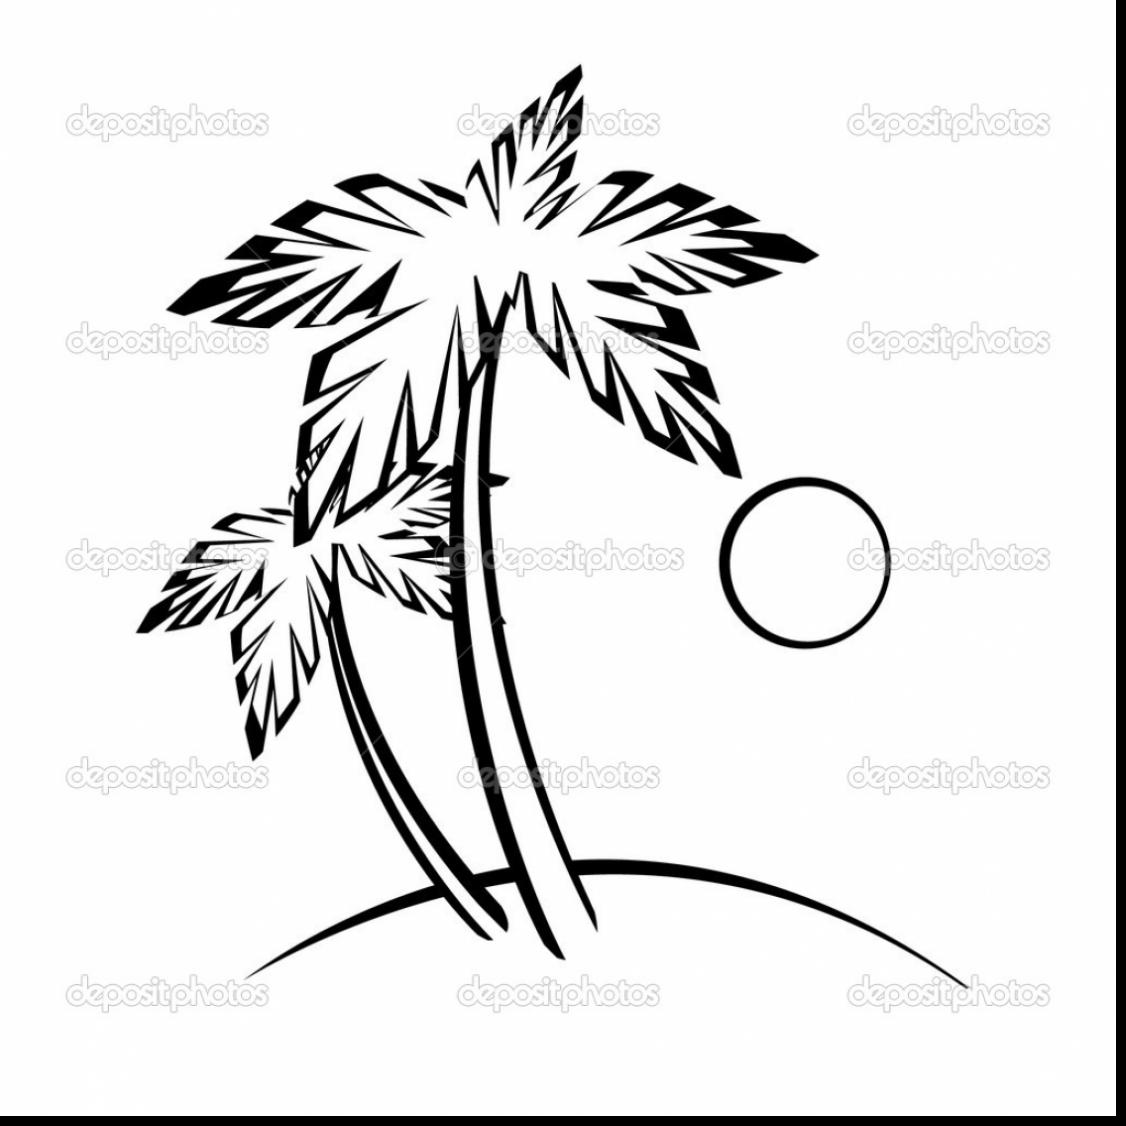 1126x1126 Fabulous Coconut Palm Tree Coloring Page With Palm Tree Coloring